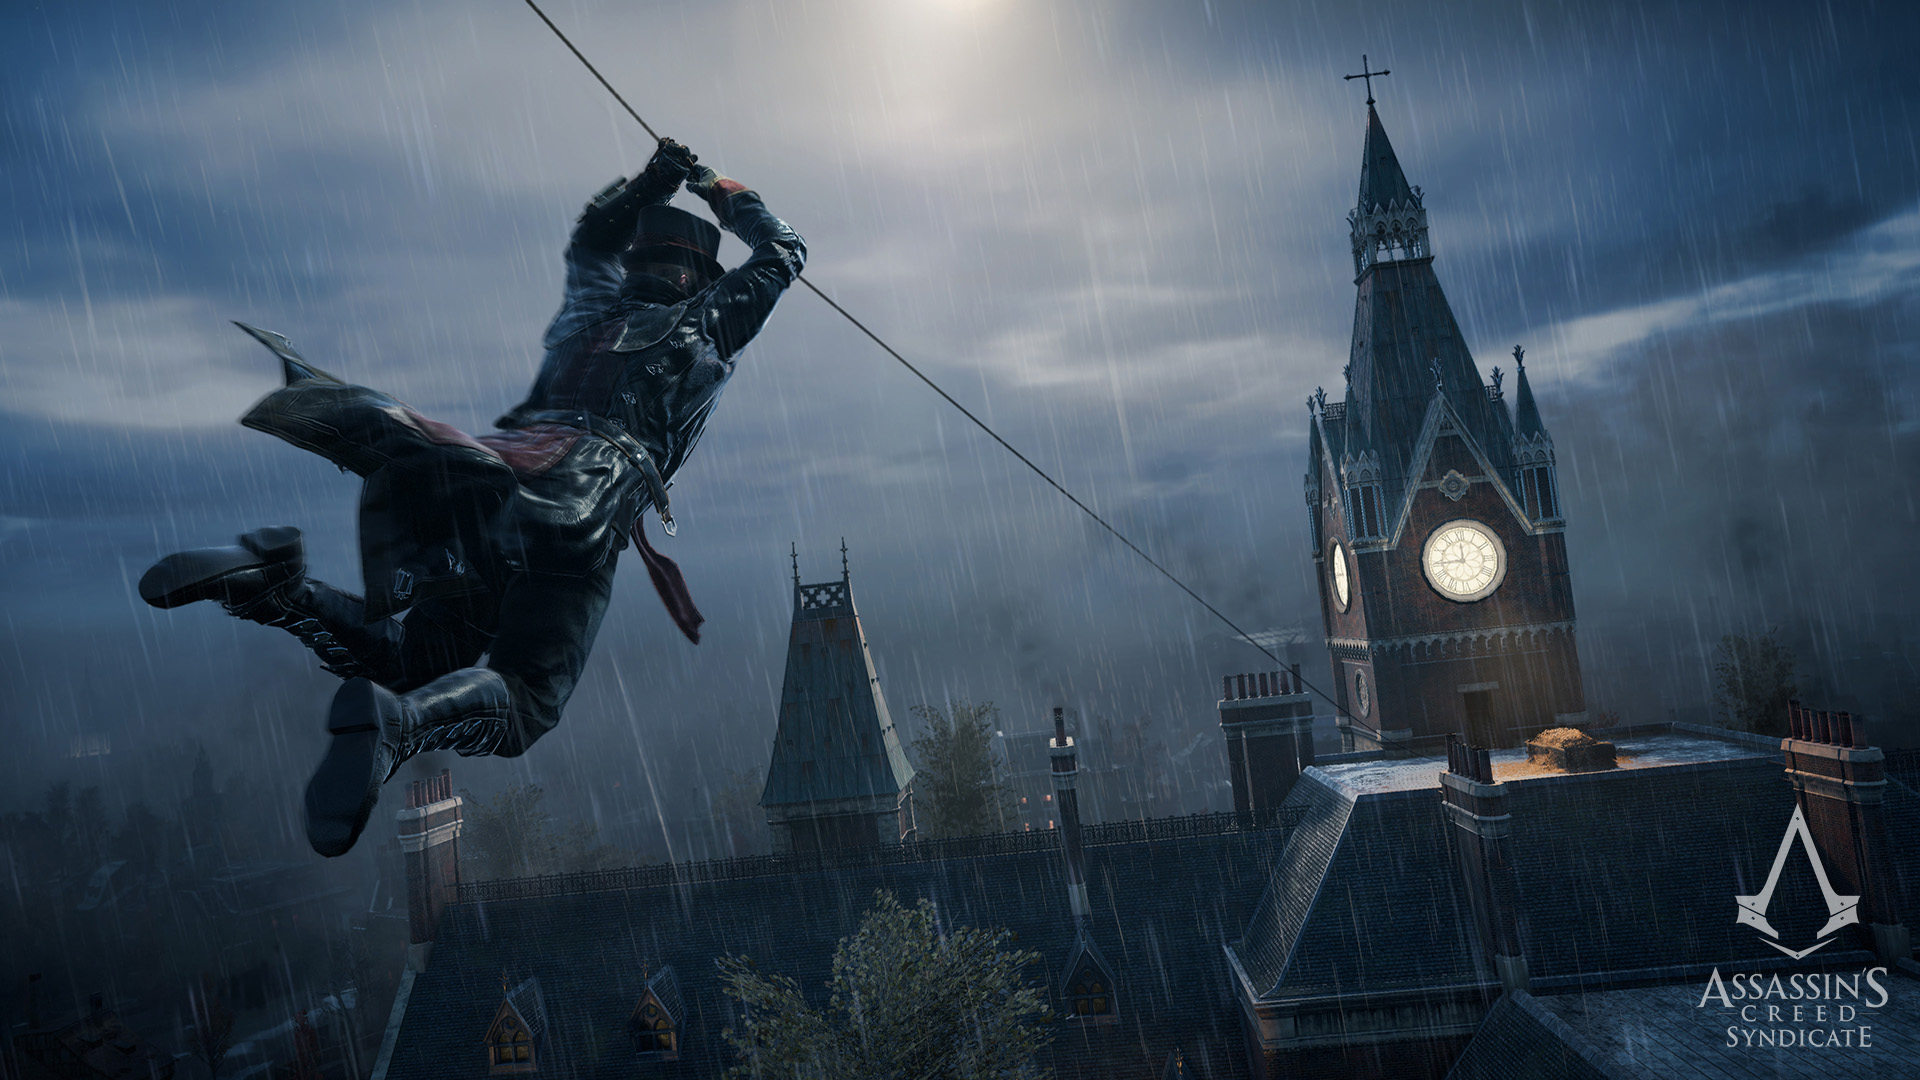 Assassin's Creed Syndicate - VGProfessional Review (65)